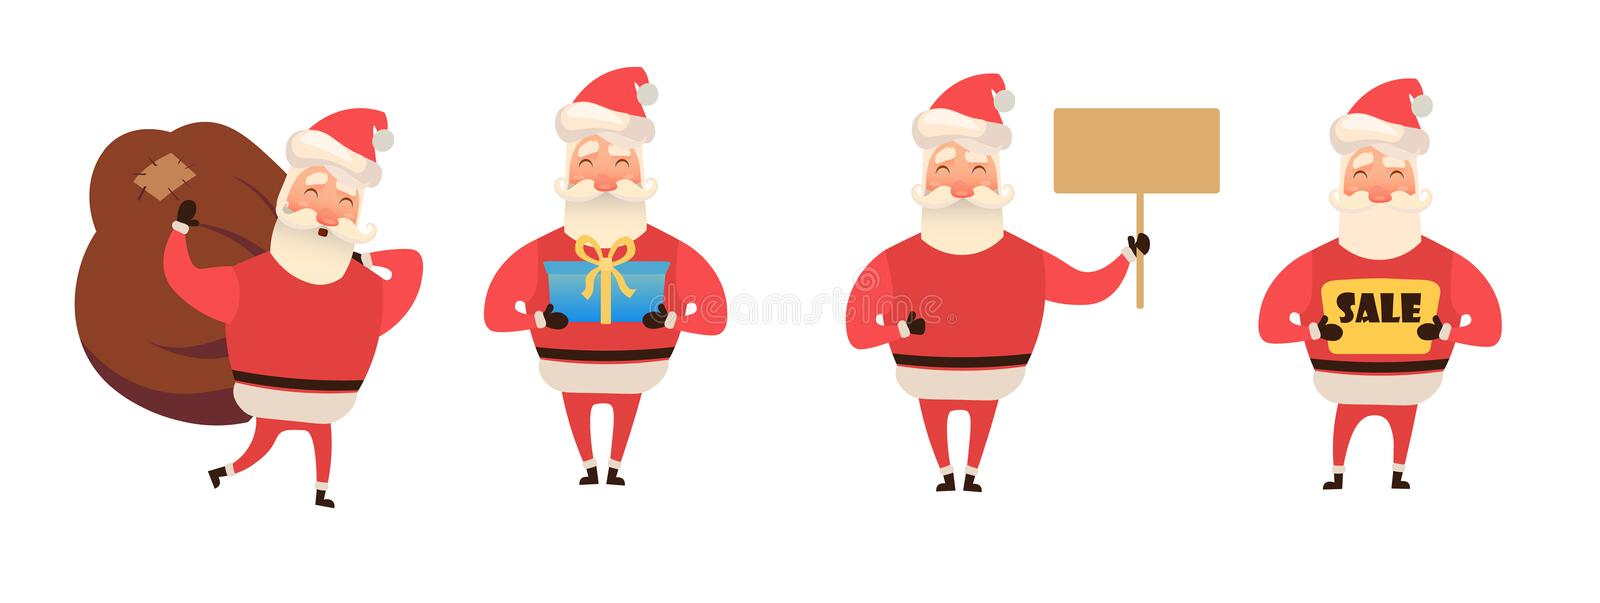 Set of cartoon Christmas illustrations isolated on white. Funny happy Santa Claus character with gift, bag with presents vector illustration